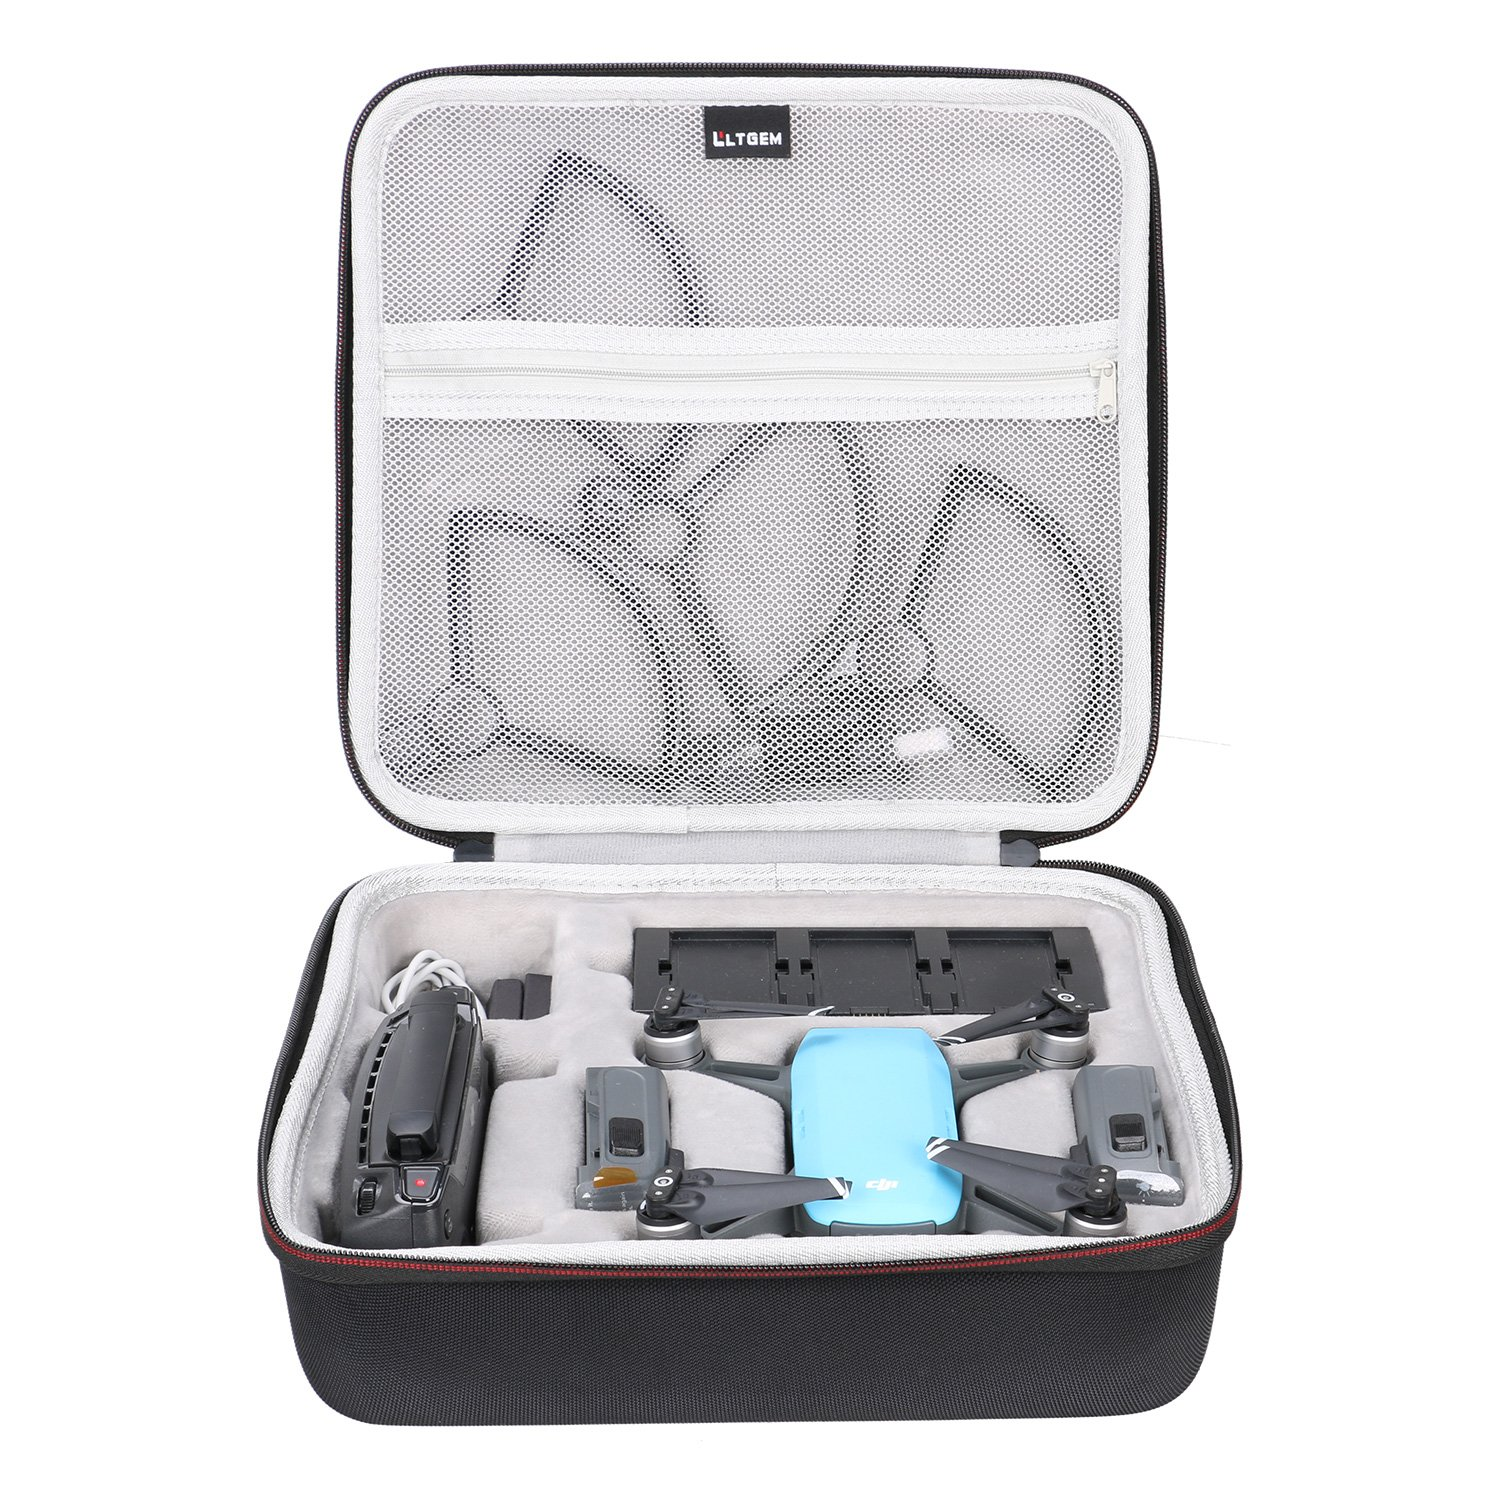 LTGEM Case for DJI Spark Drone Fits 4 Drone Batteries,Propeller Guard,Battery Charger,Remote Controller and Other Accessories-Black with Mesh Pocket